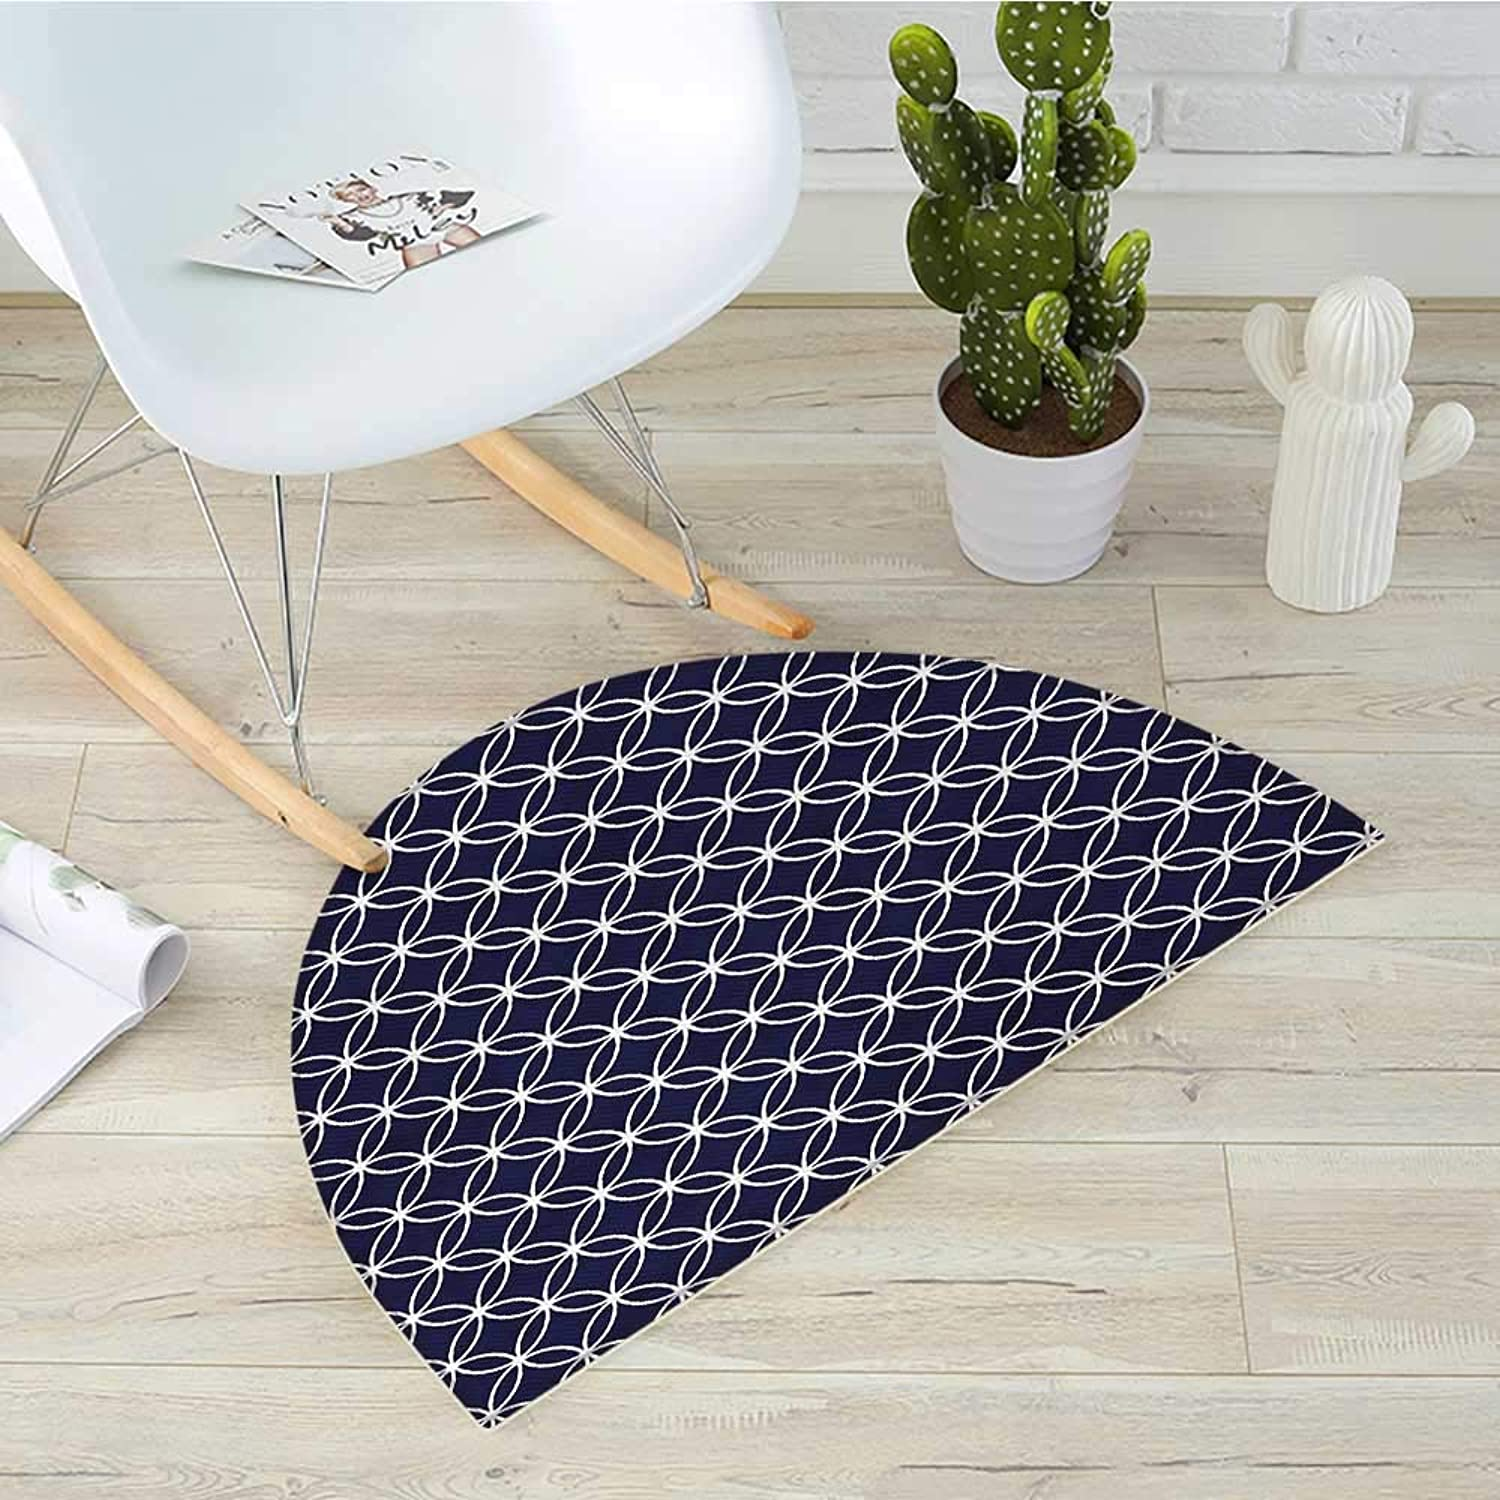 Navy Semicircle Doormat Trellis Inspired Pattern Quatrefoil Circles Mgoldccan Style Tile Theme Image Halfmoon doormats H 43.3  xD 64.9  Navy bluee and White